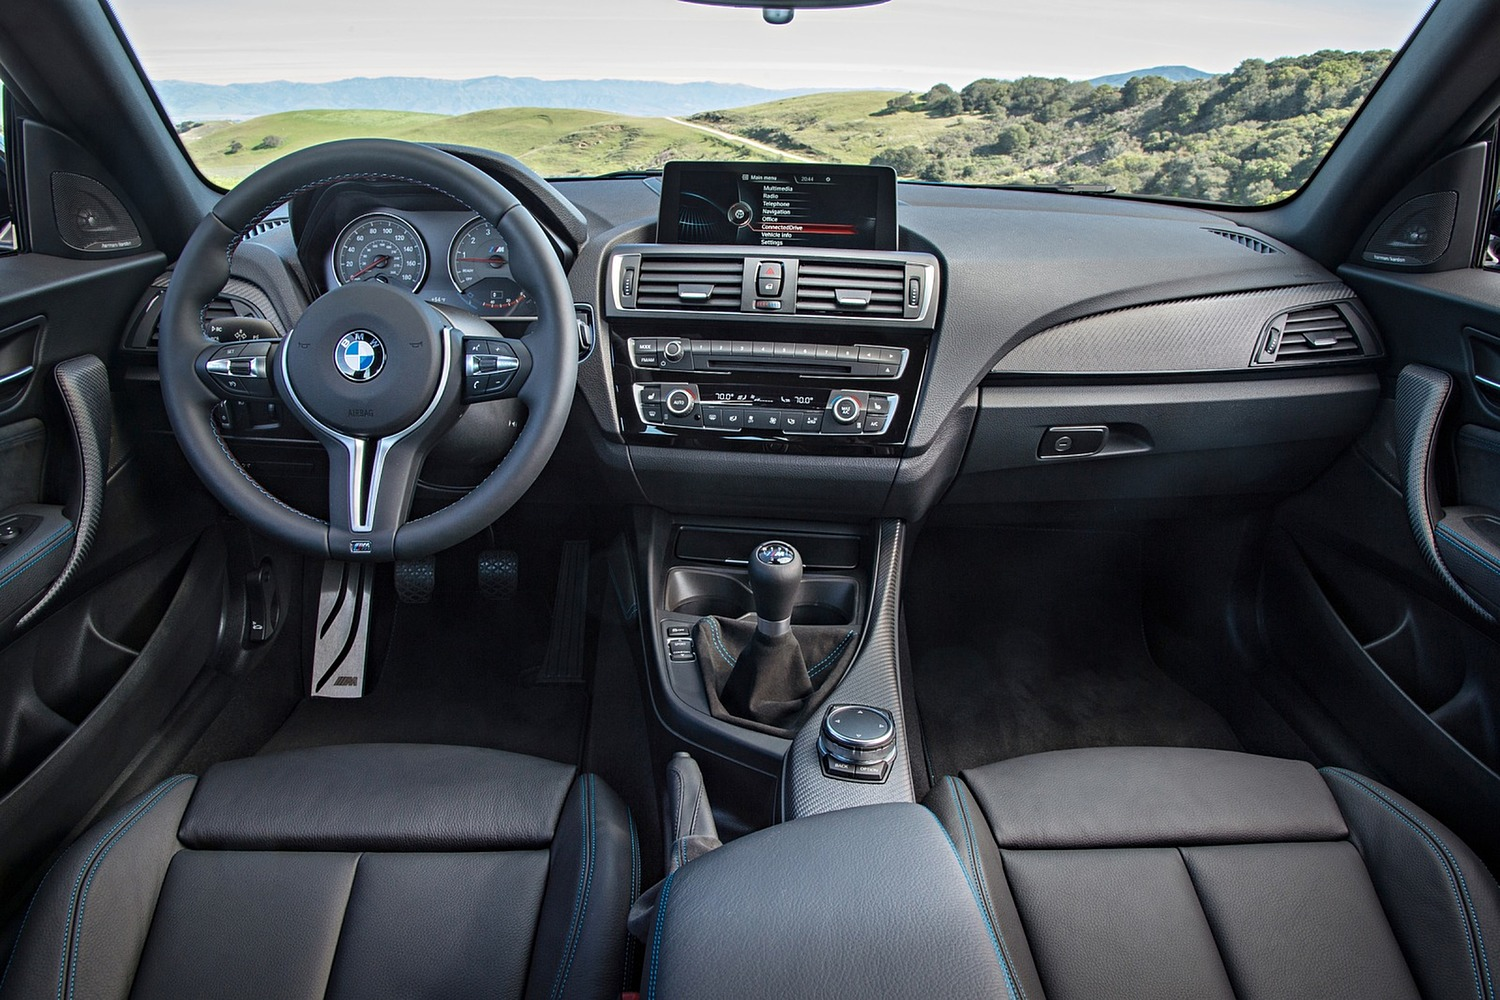 BMW M2 Coupe Dashboard (2016 model year shown)